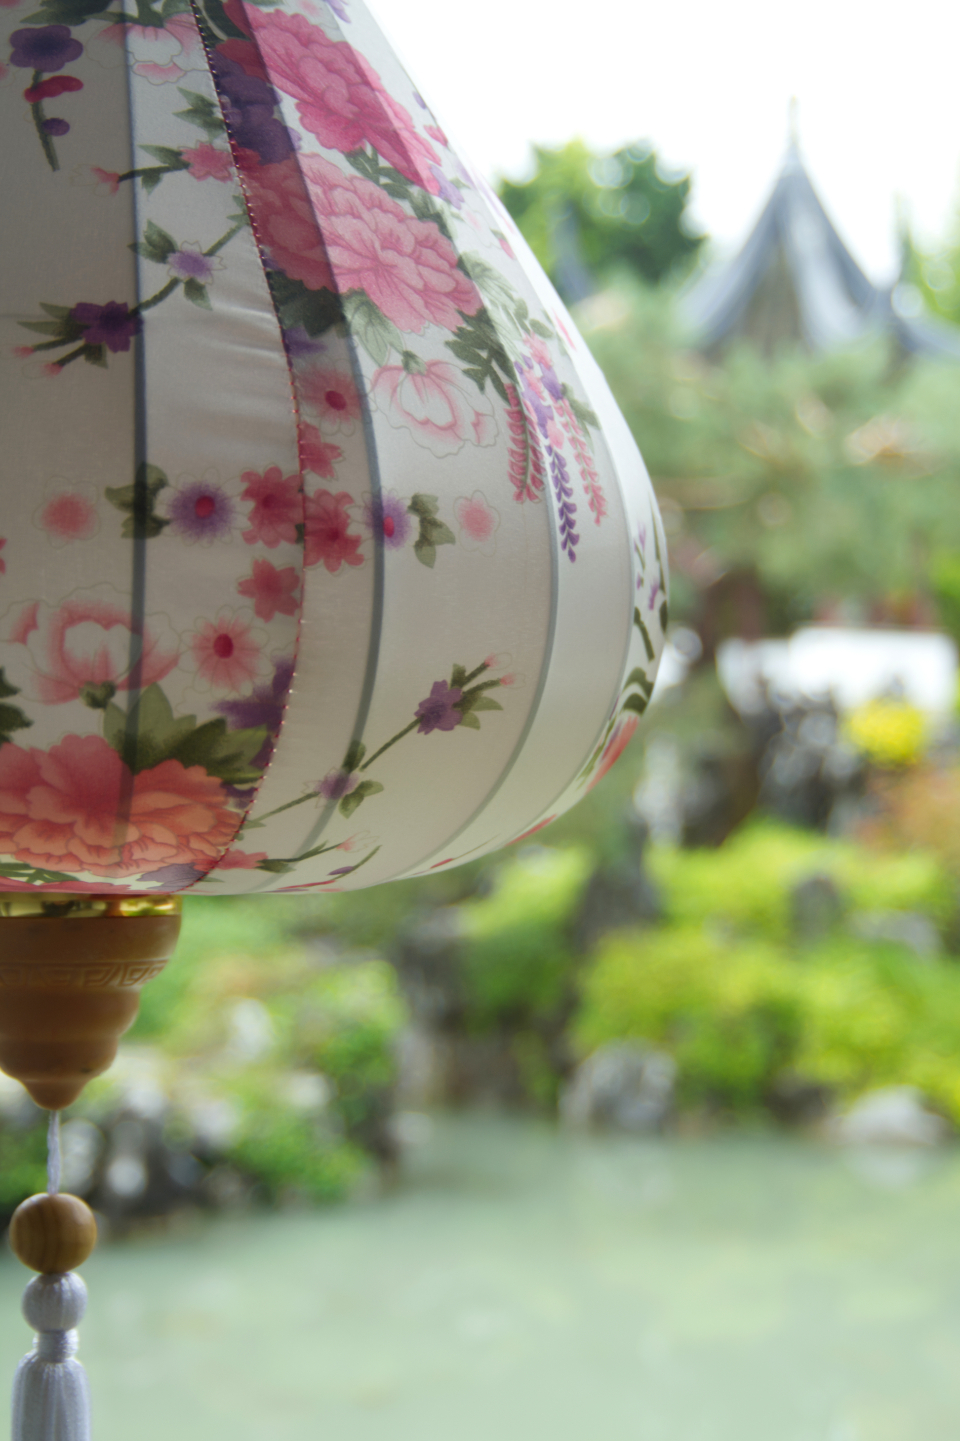 chinese china asian decoration celebrate oriental ornament lamp colorful art decor elegant hanging lantern floral